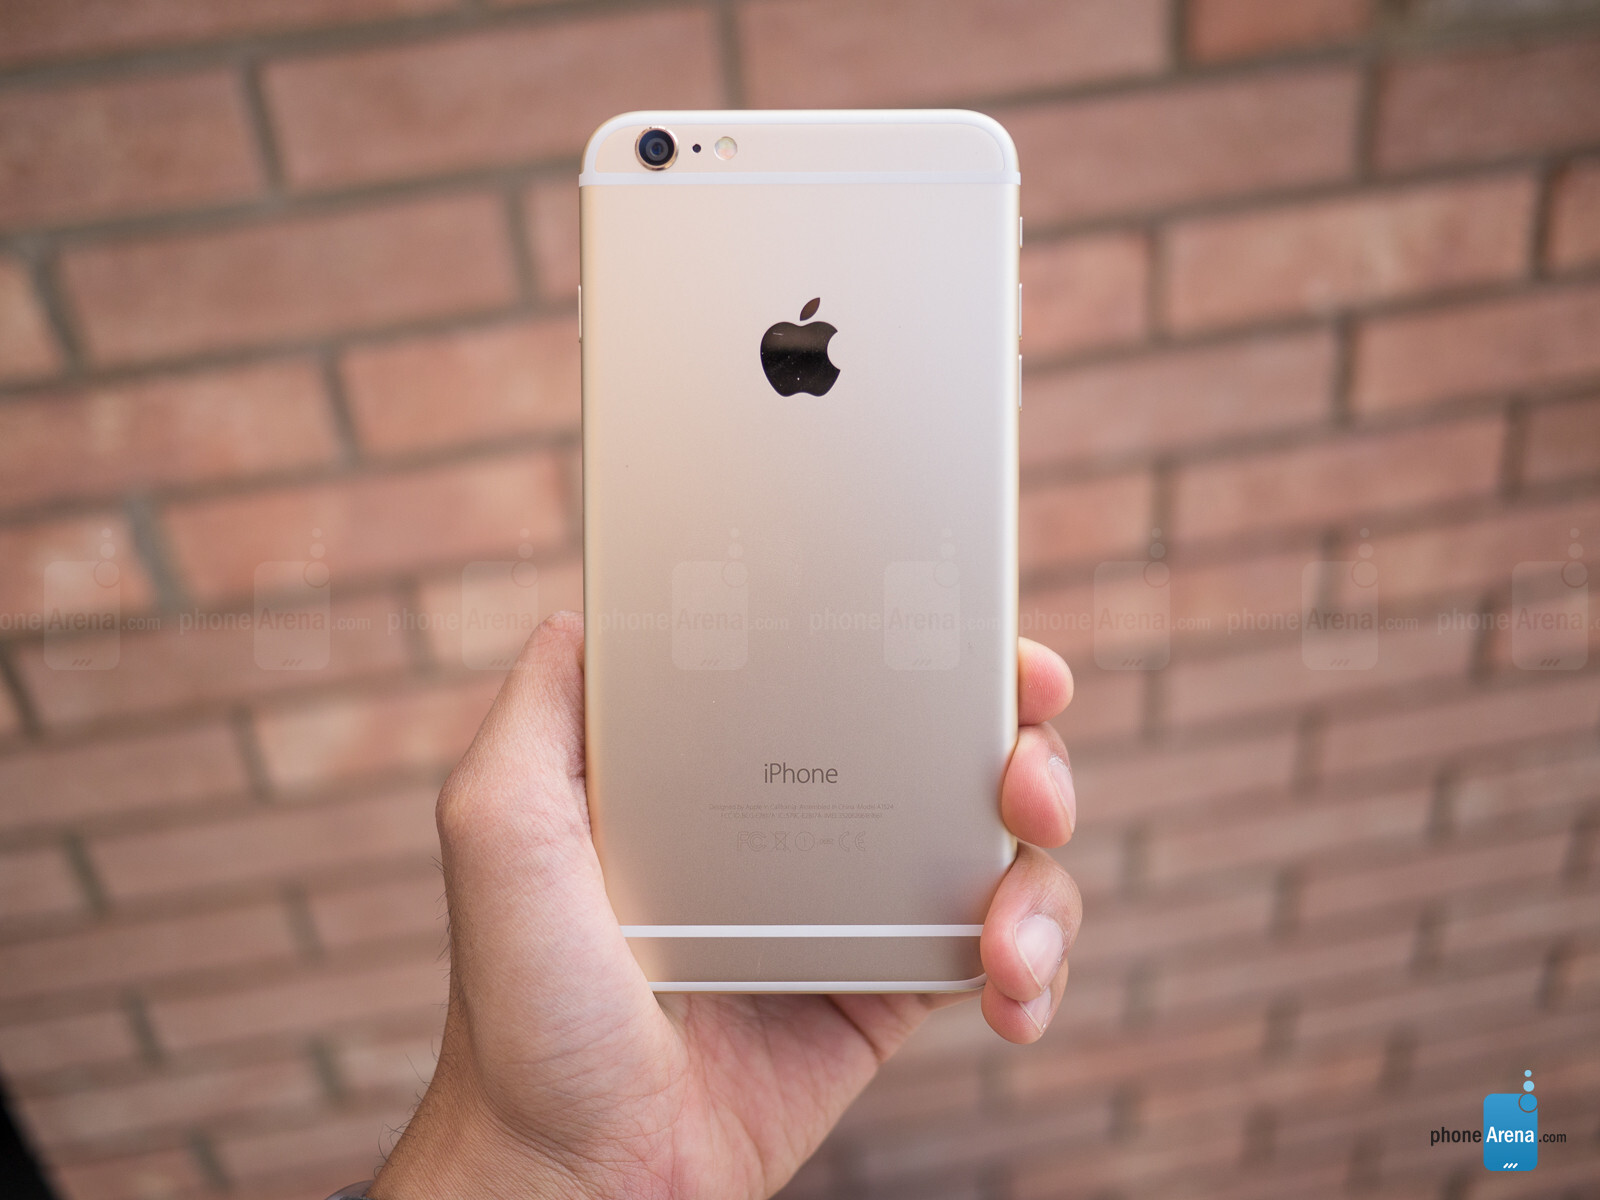 apple starts selling the iphone 6 and iphone 6 plus in 22